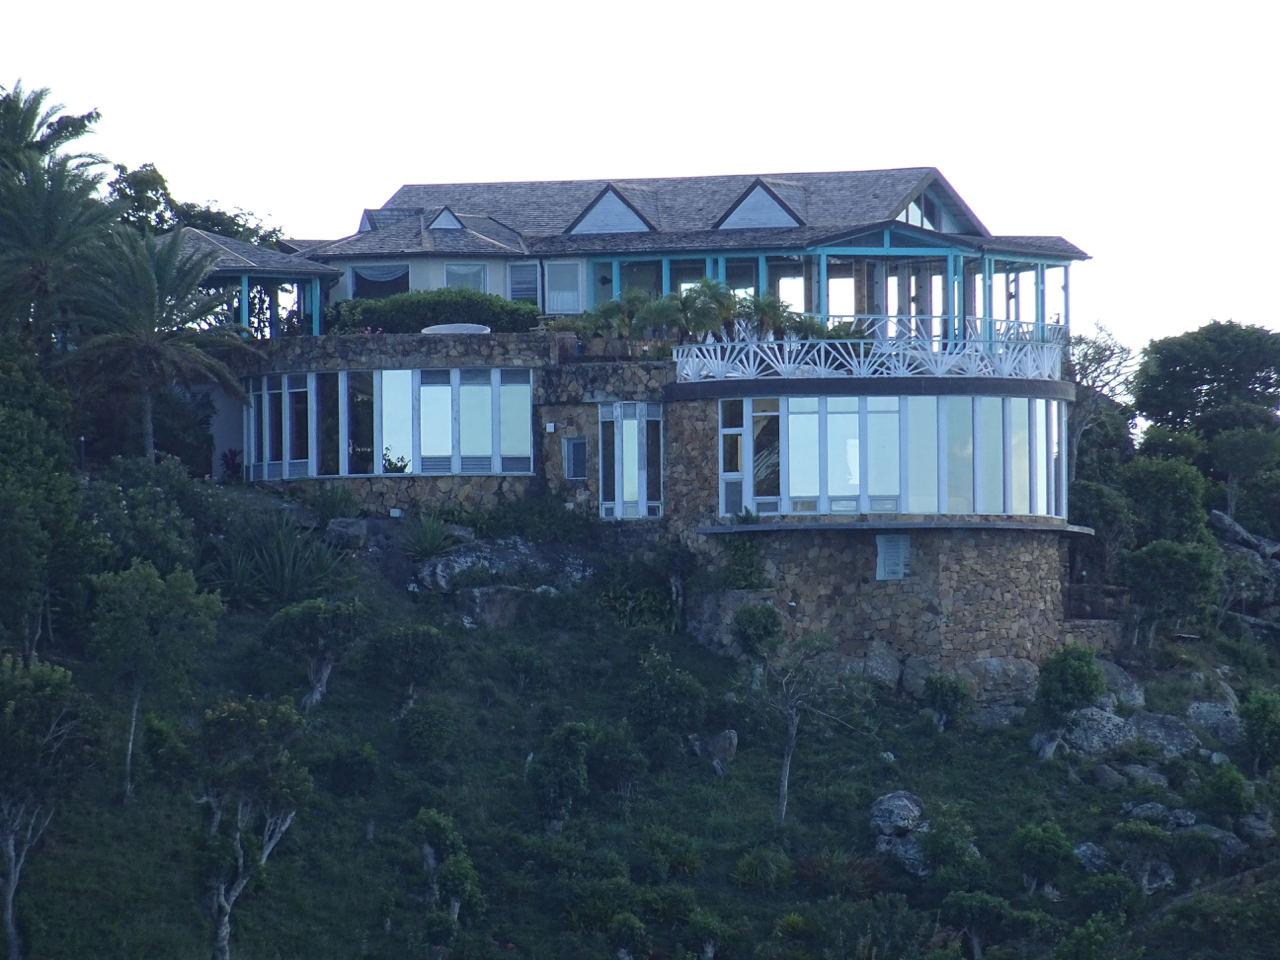 galley bay heights villa